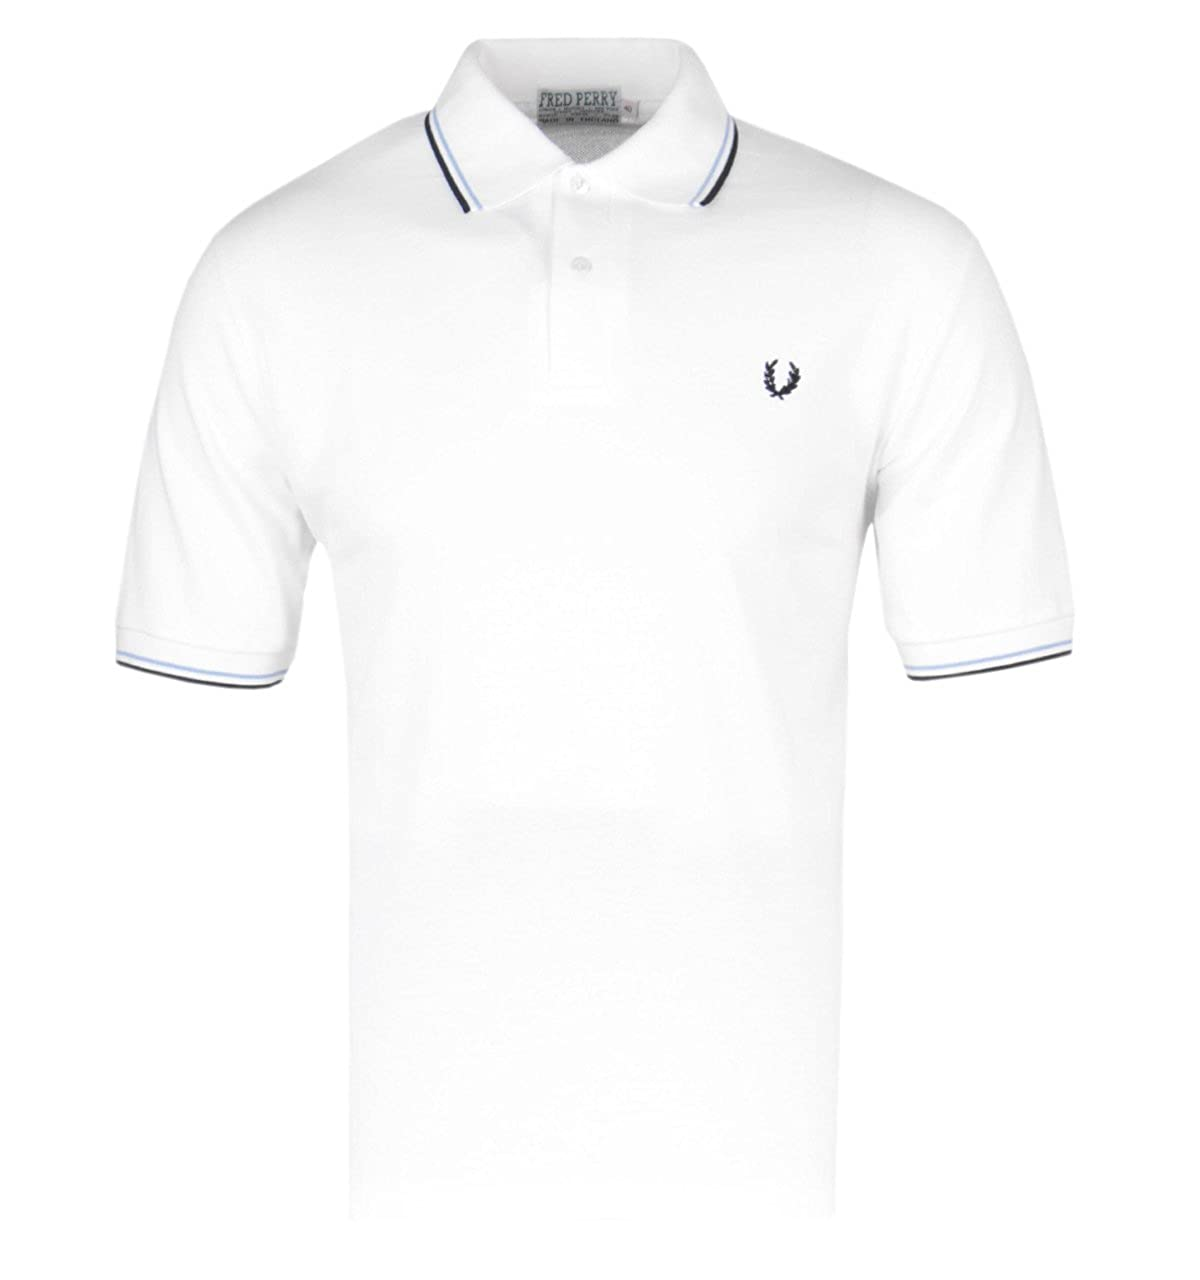 Fred Perry Shirt M53 129-38: Amazon.es: Ropa y accesorios